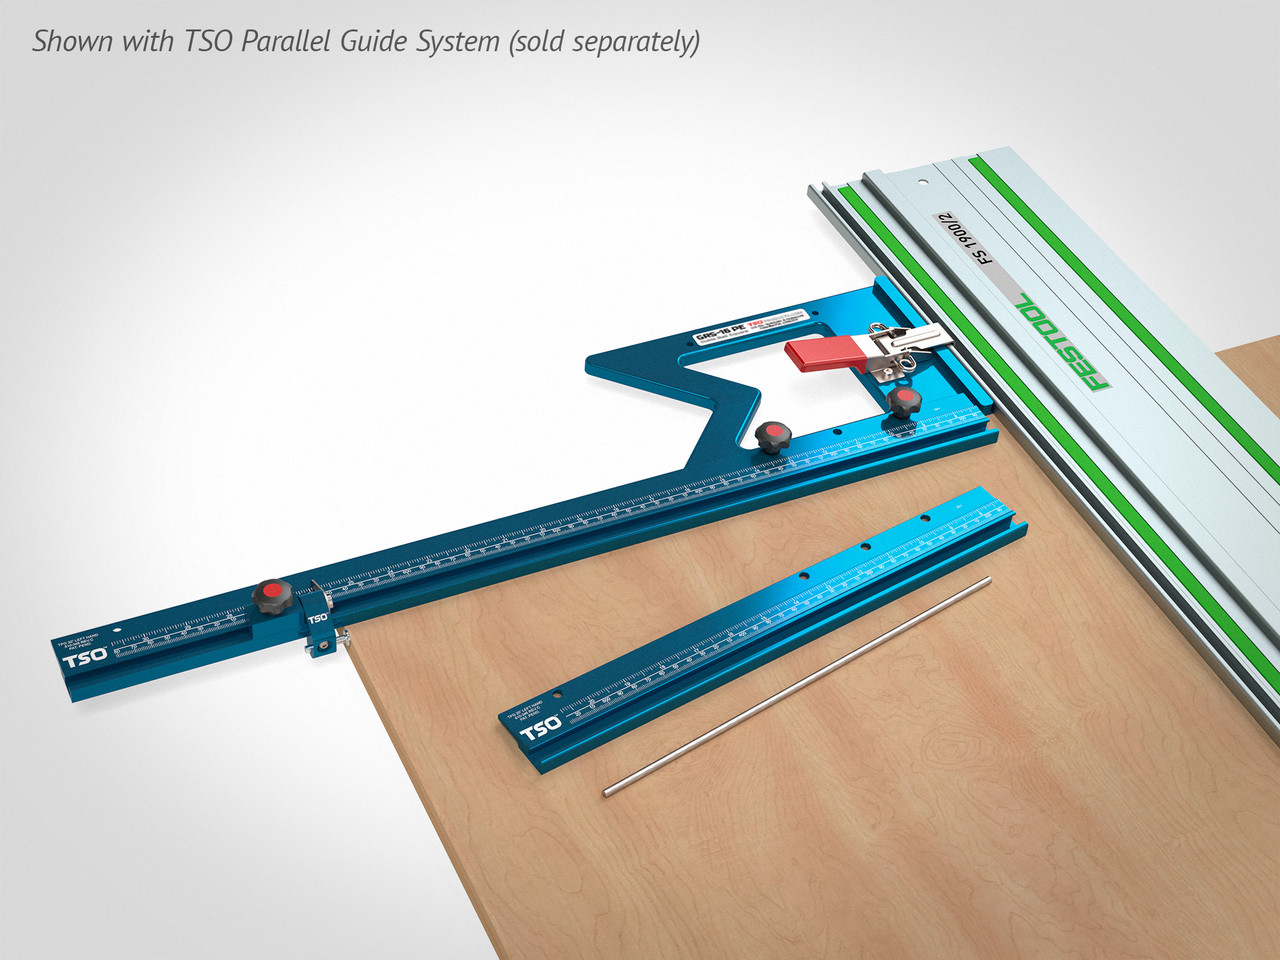 Connect the GRS-16 or GRS-16 PE to the TSO Parallel Guide System, enabling rapid square, parallel and repeatable cuts--perfect for batched workpieces.